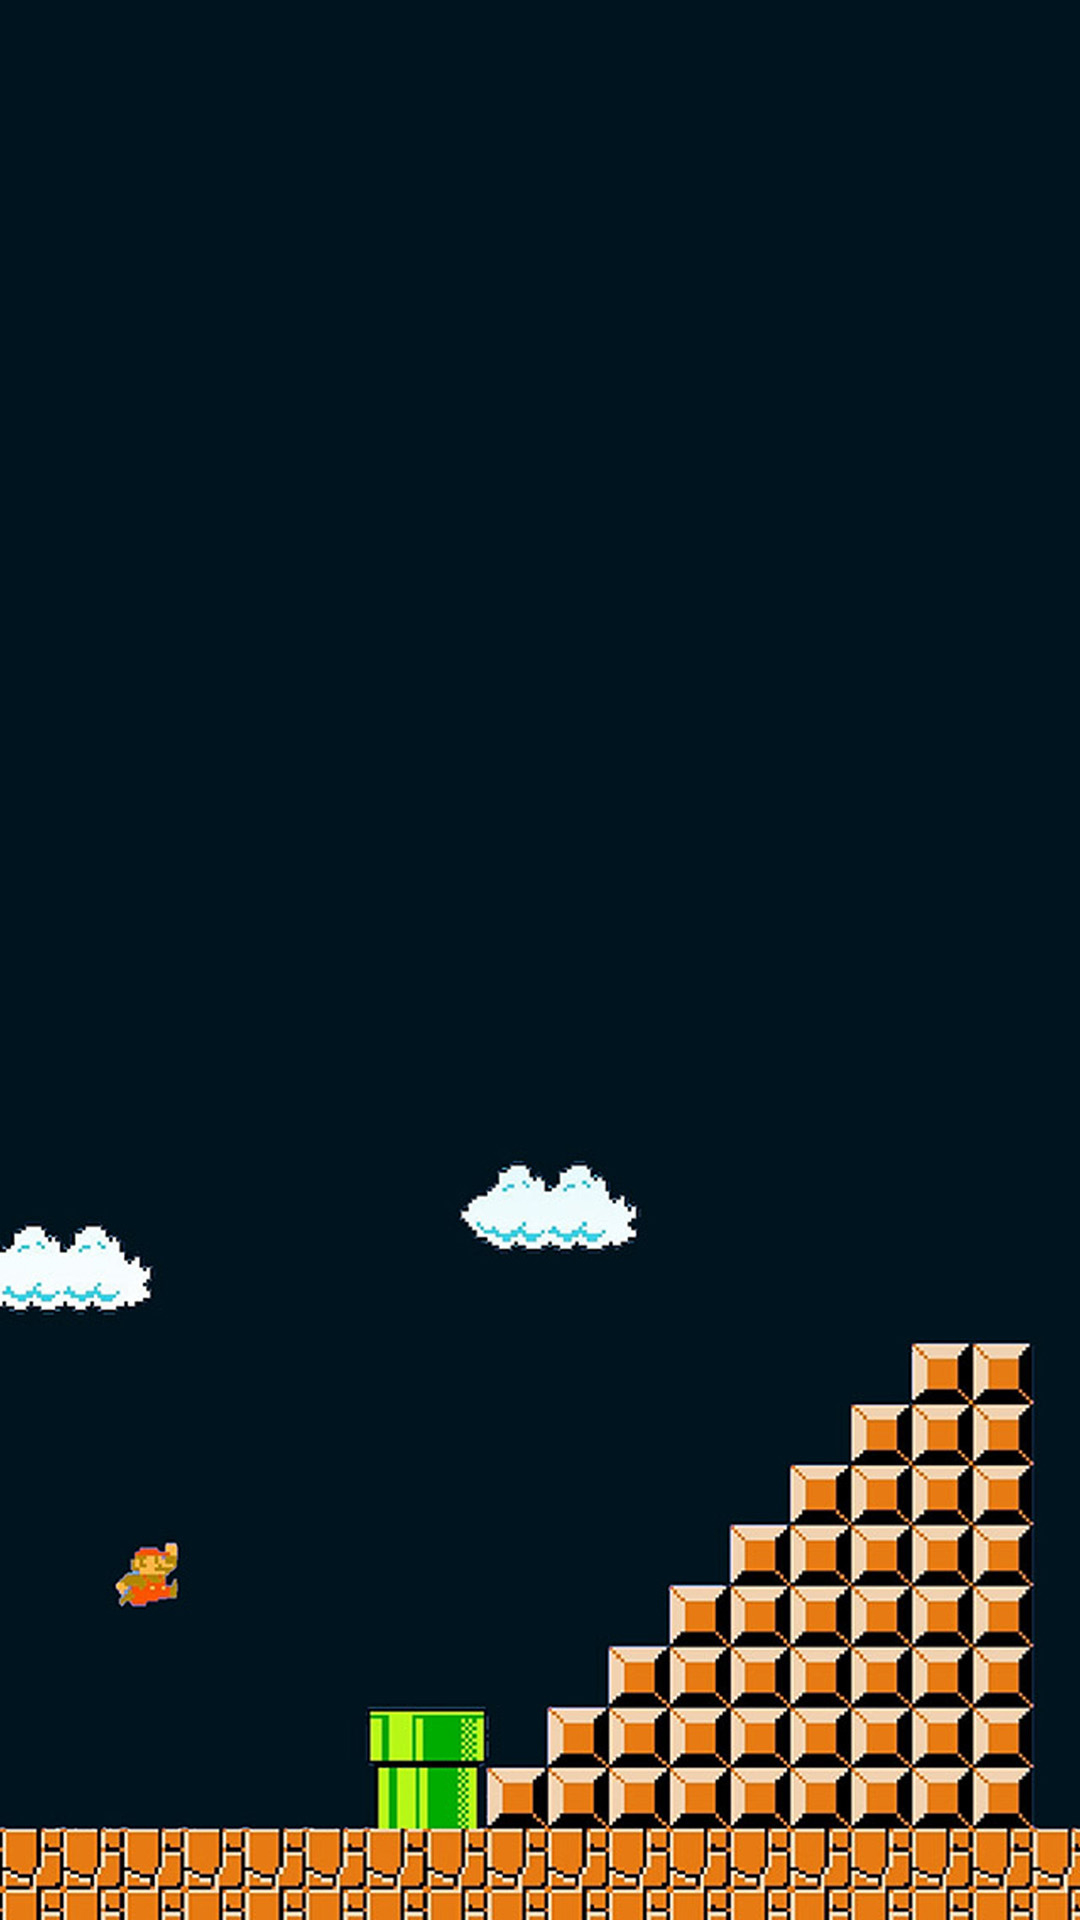 Free download 21 bit video game wallpapers for iPhone and iPad ...